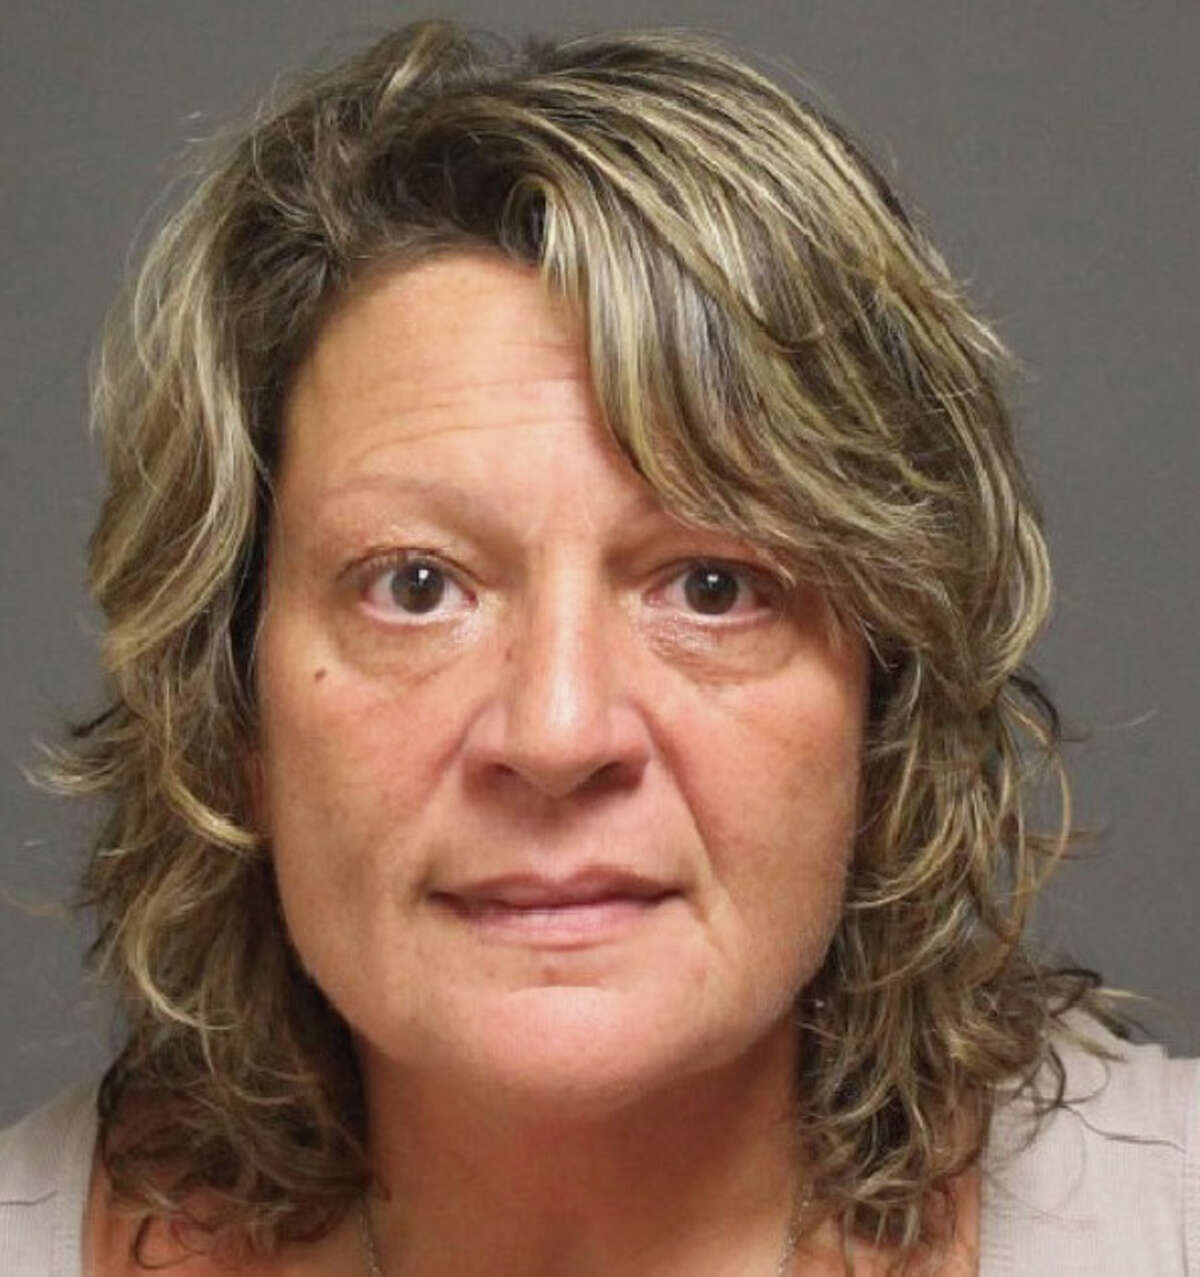 Carol Cardillo appeared in court in Bridgeport on Thursday, charged with second-degree manslaughter, second-degree reckless endangerment and risk of injury to a minor in connection with the death of an infant at an illegal home daycare center she ran at her home in Fairfield, Conn.